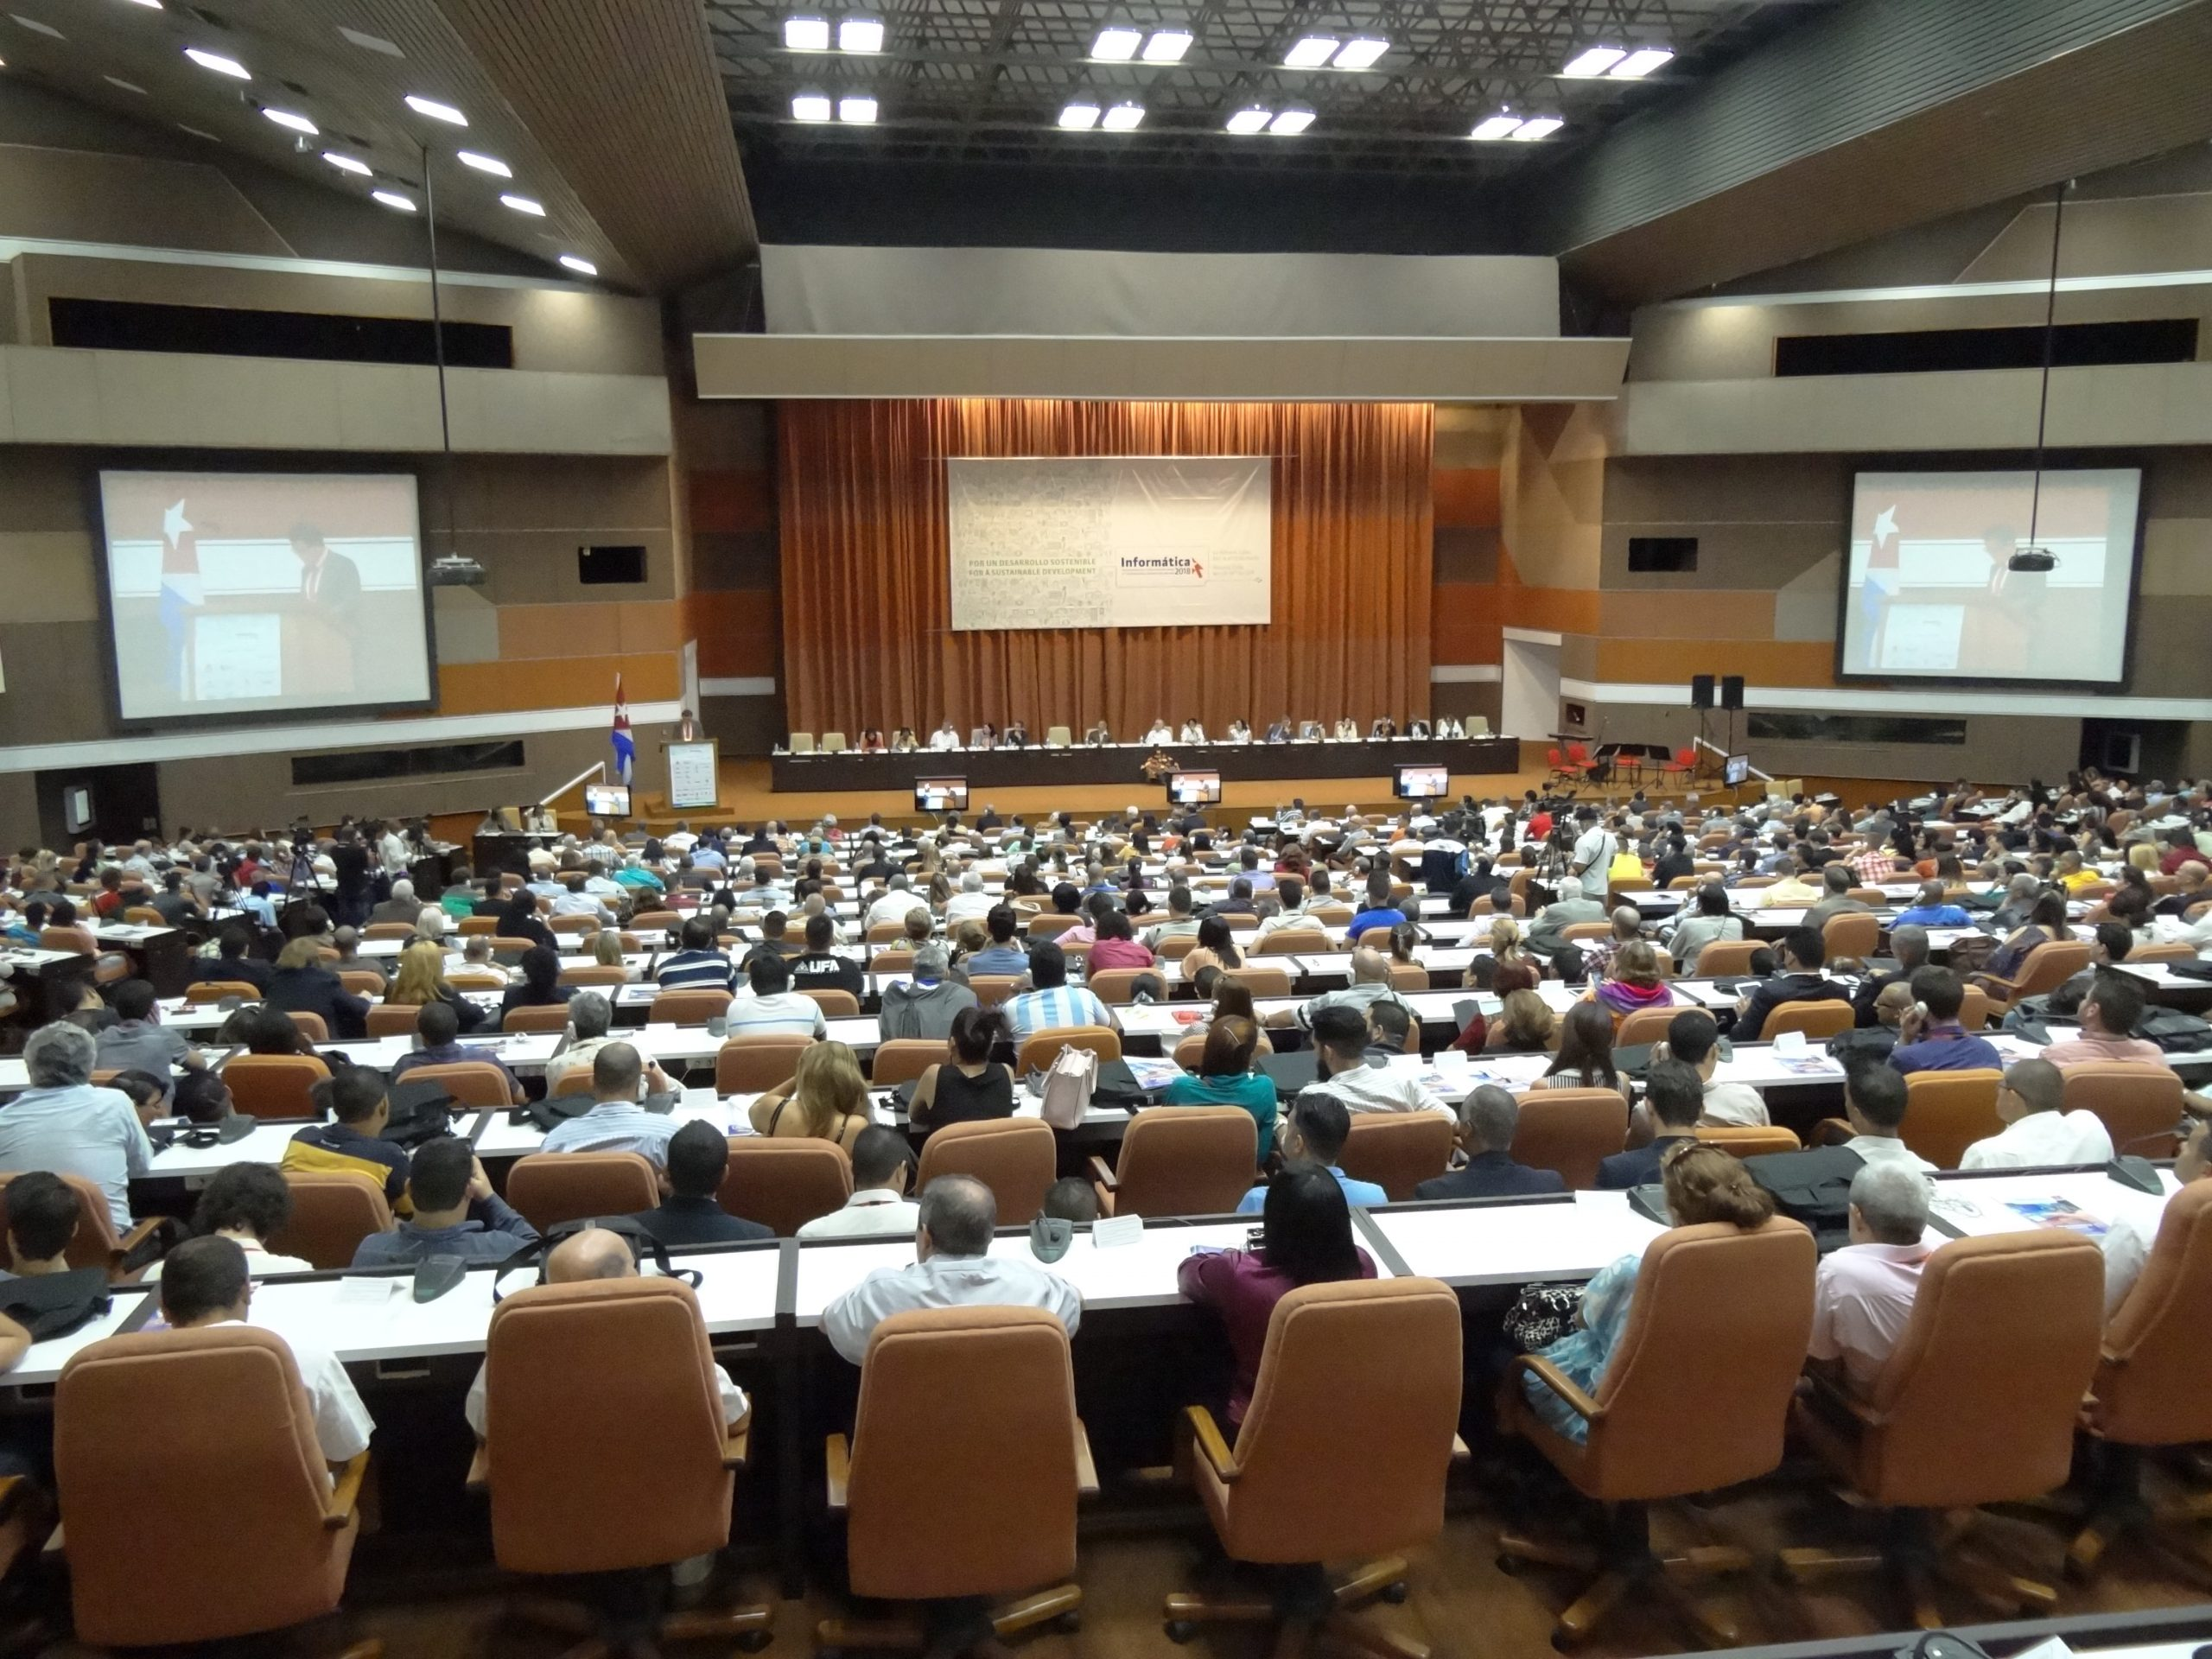 2018 Intervention of foreign personality in plenary hall